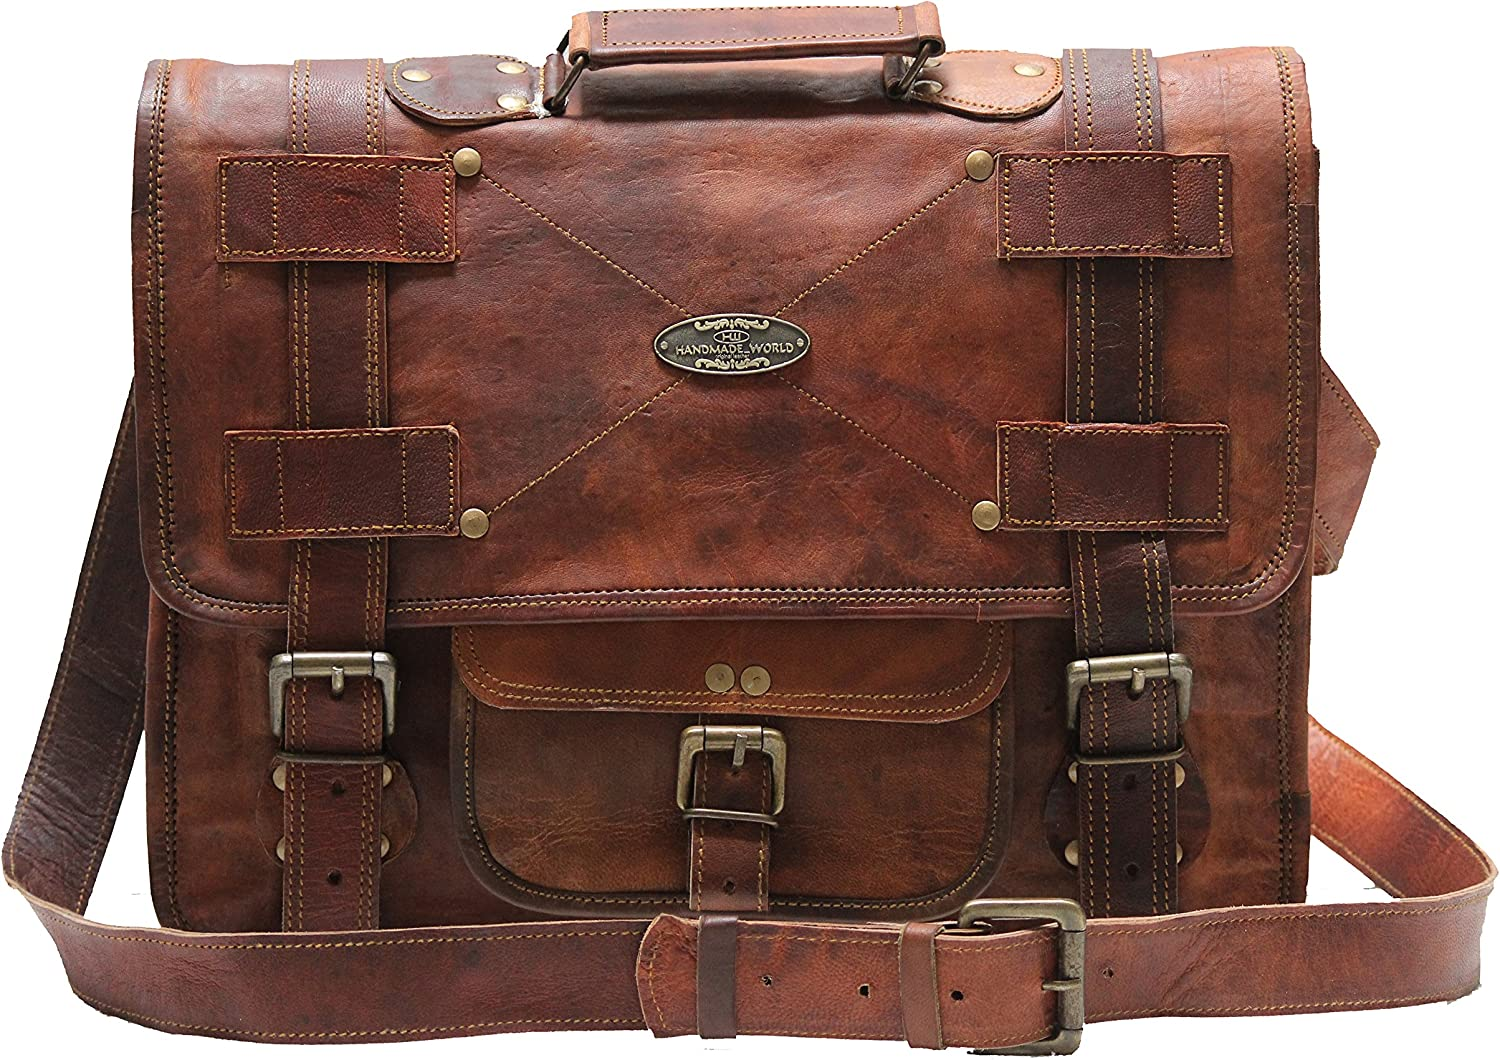 "Handmade World Leather Messenger Bags For Men Women Briefcase Laptop Computer Satchel Distressed Bag (13"" X 18"")"